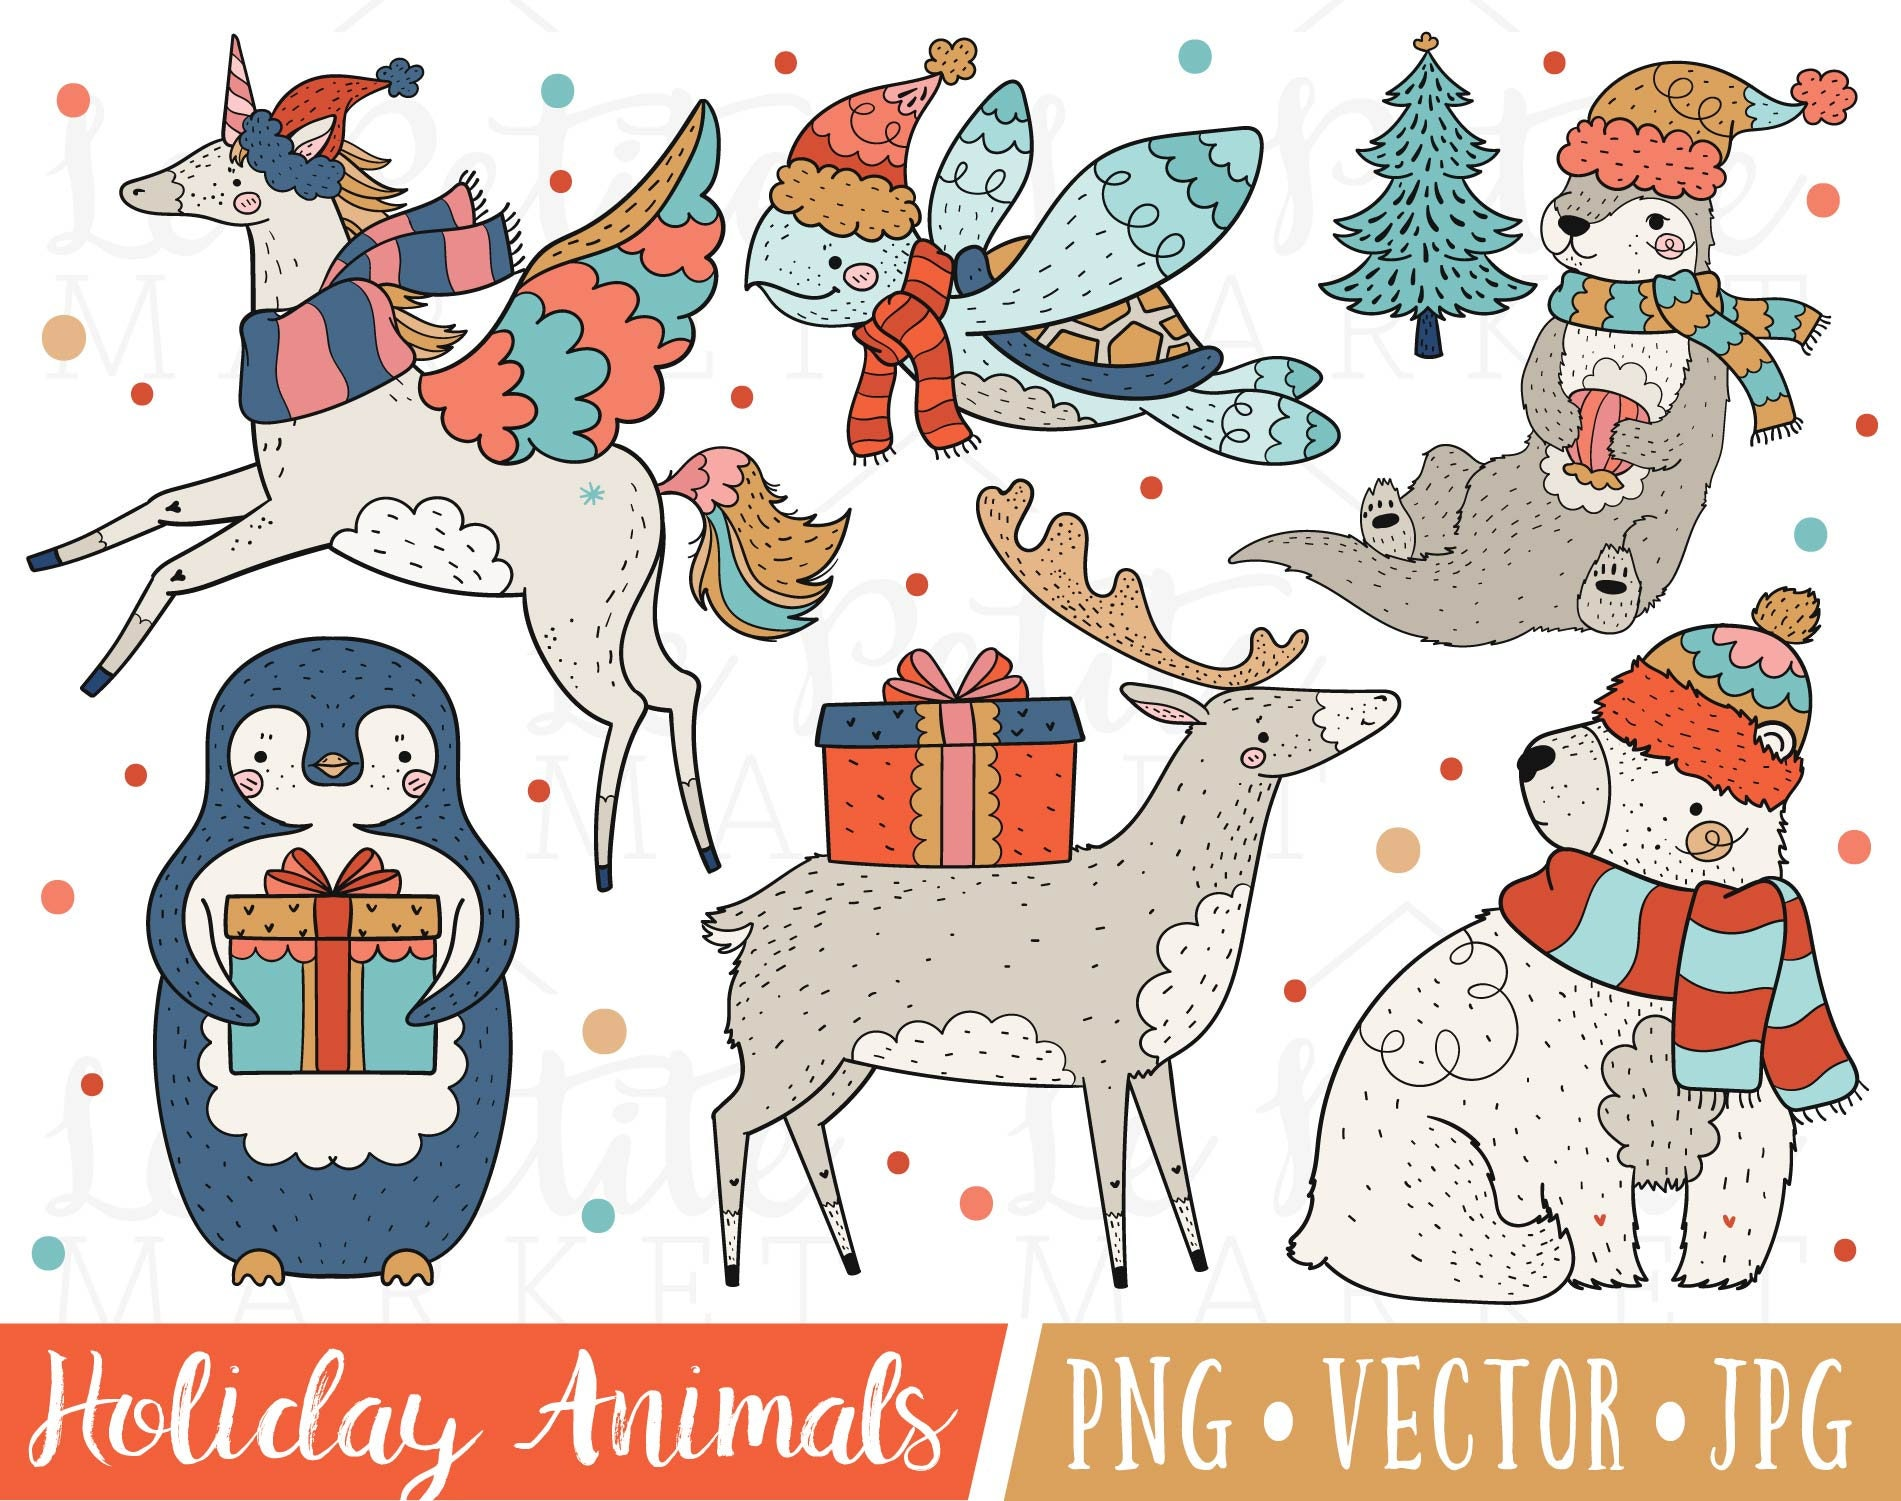 Festive Holiday Animal Clipart Images Christmas Illustrations